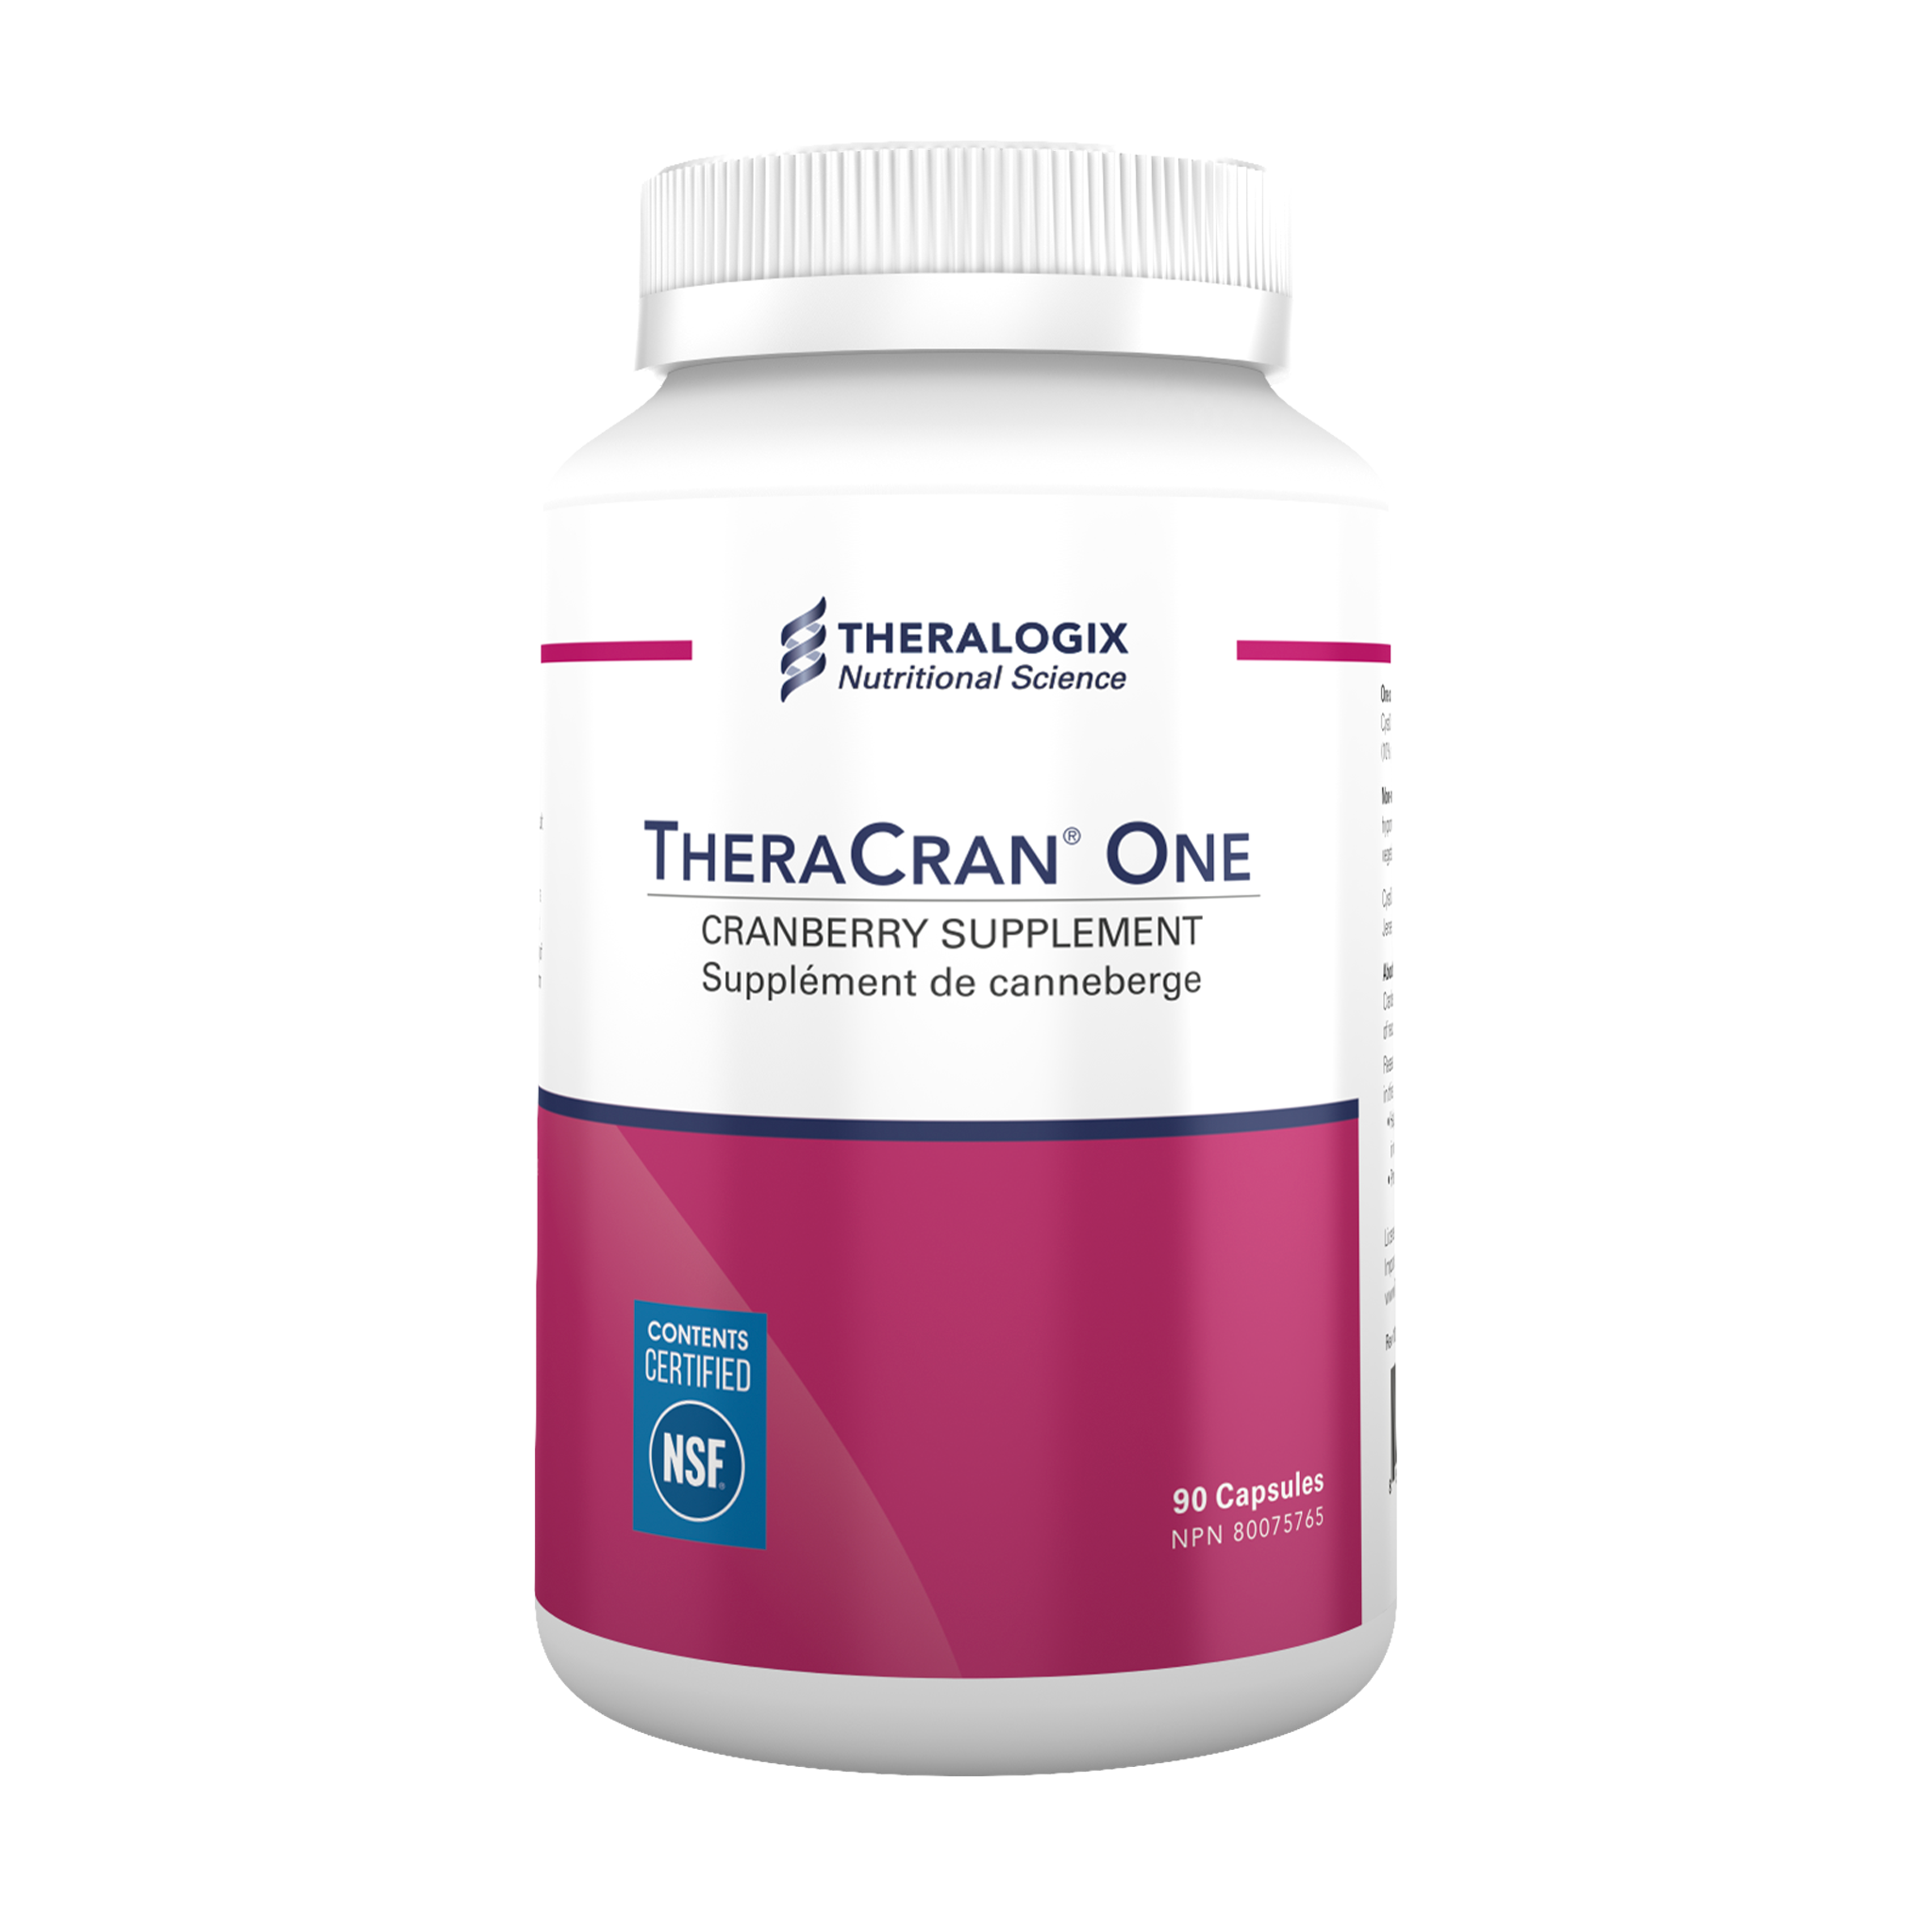 TheraCran® One Cranberry Capsules (90-day supply) - Theralogix Canada